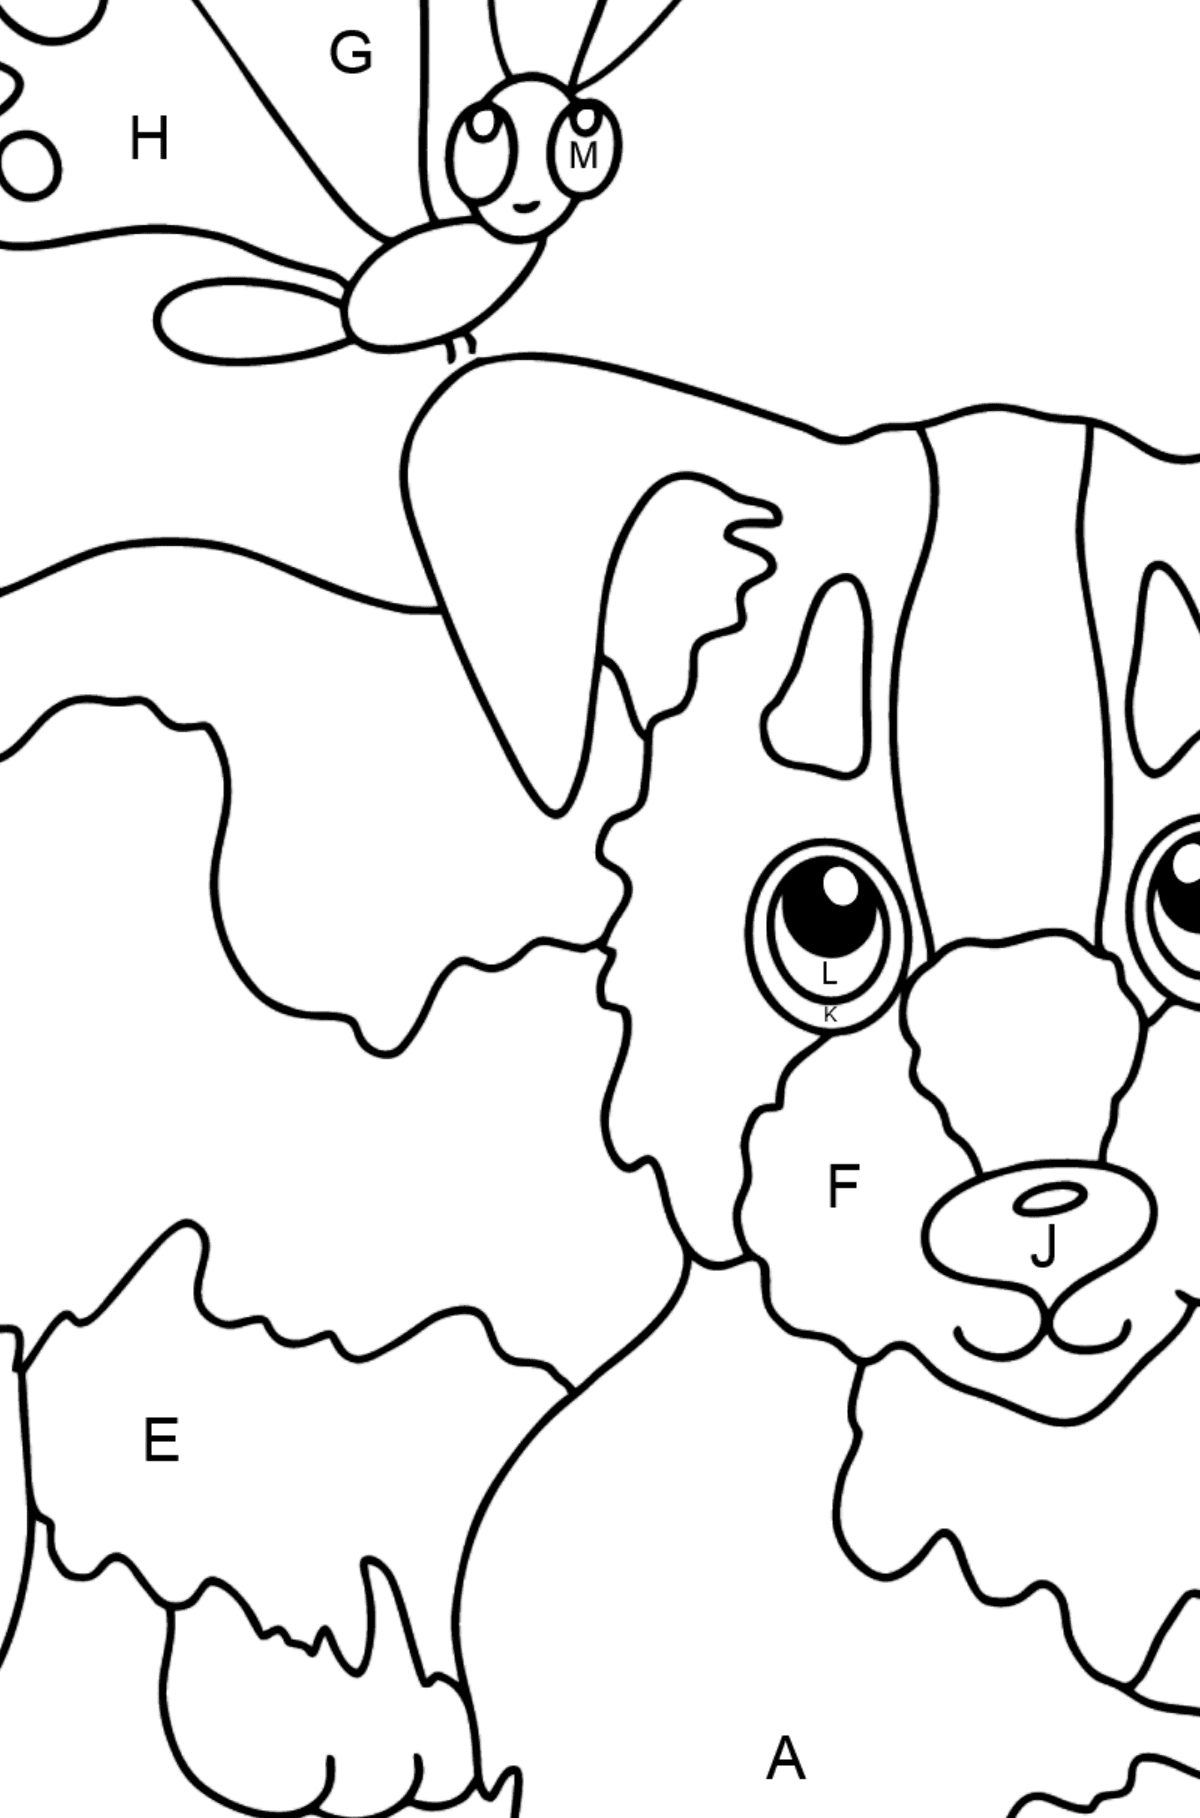 Coloring Page - A Dog is Playing with a Beautiful Butterfly - Coloring by Letters for Kids